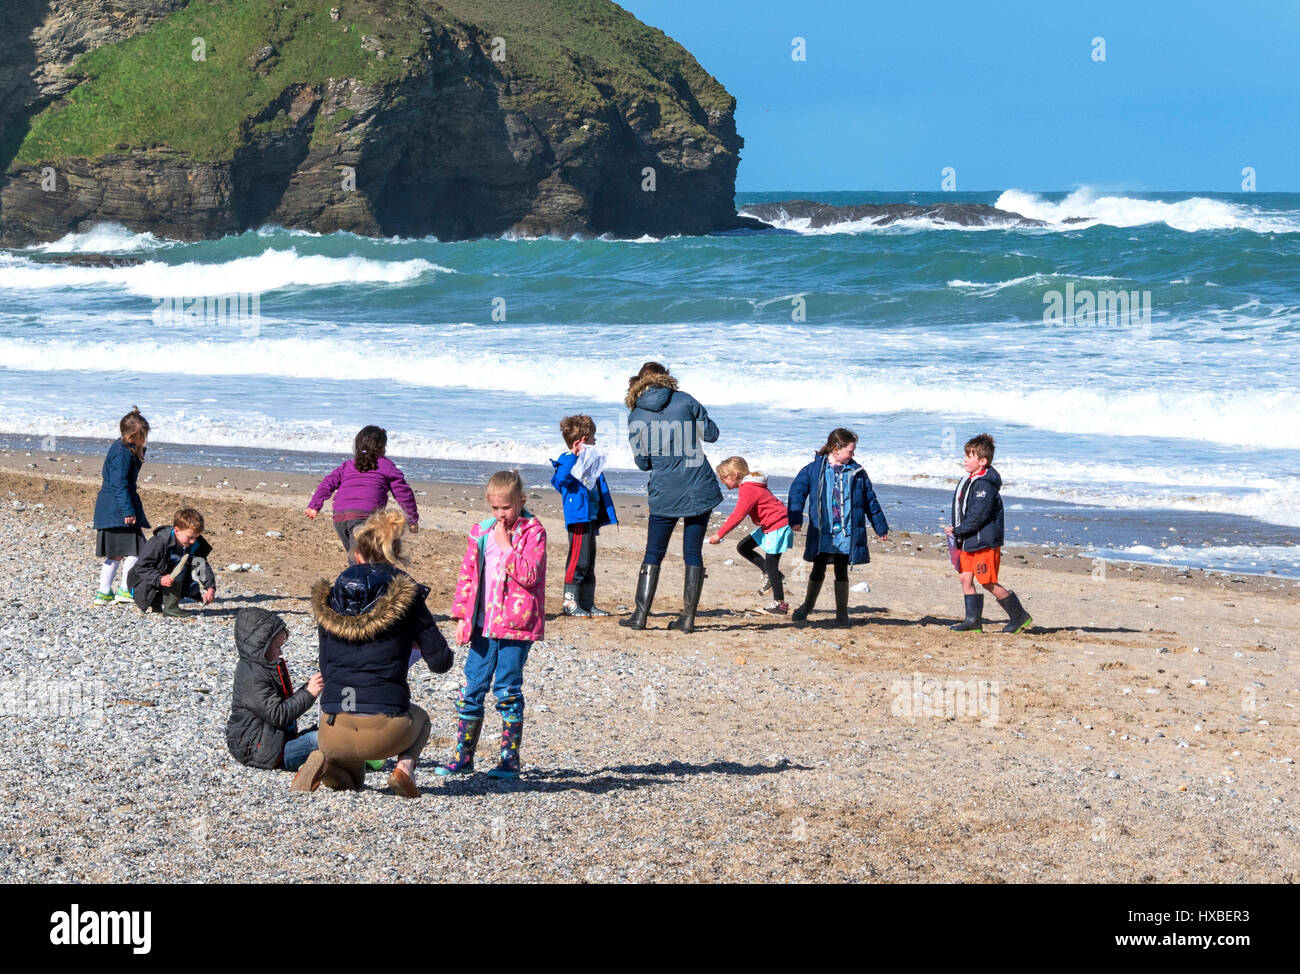 schoolchildren from portreath in cornwall, england, uk, have a lesson on the beach in spring sunshine, - Stock Image